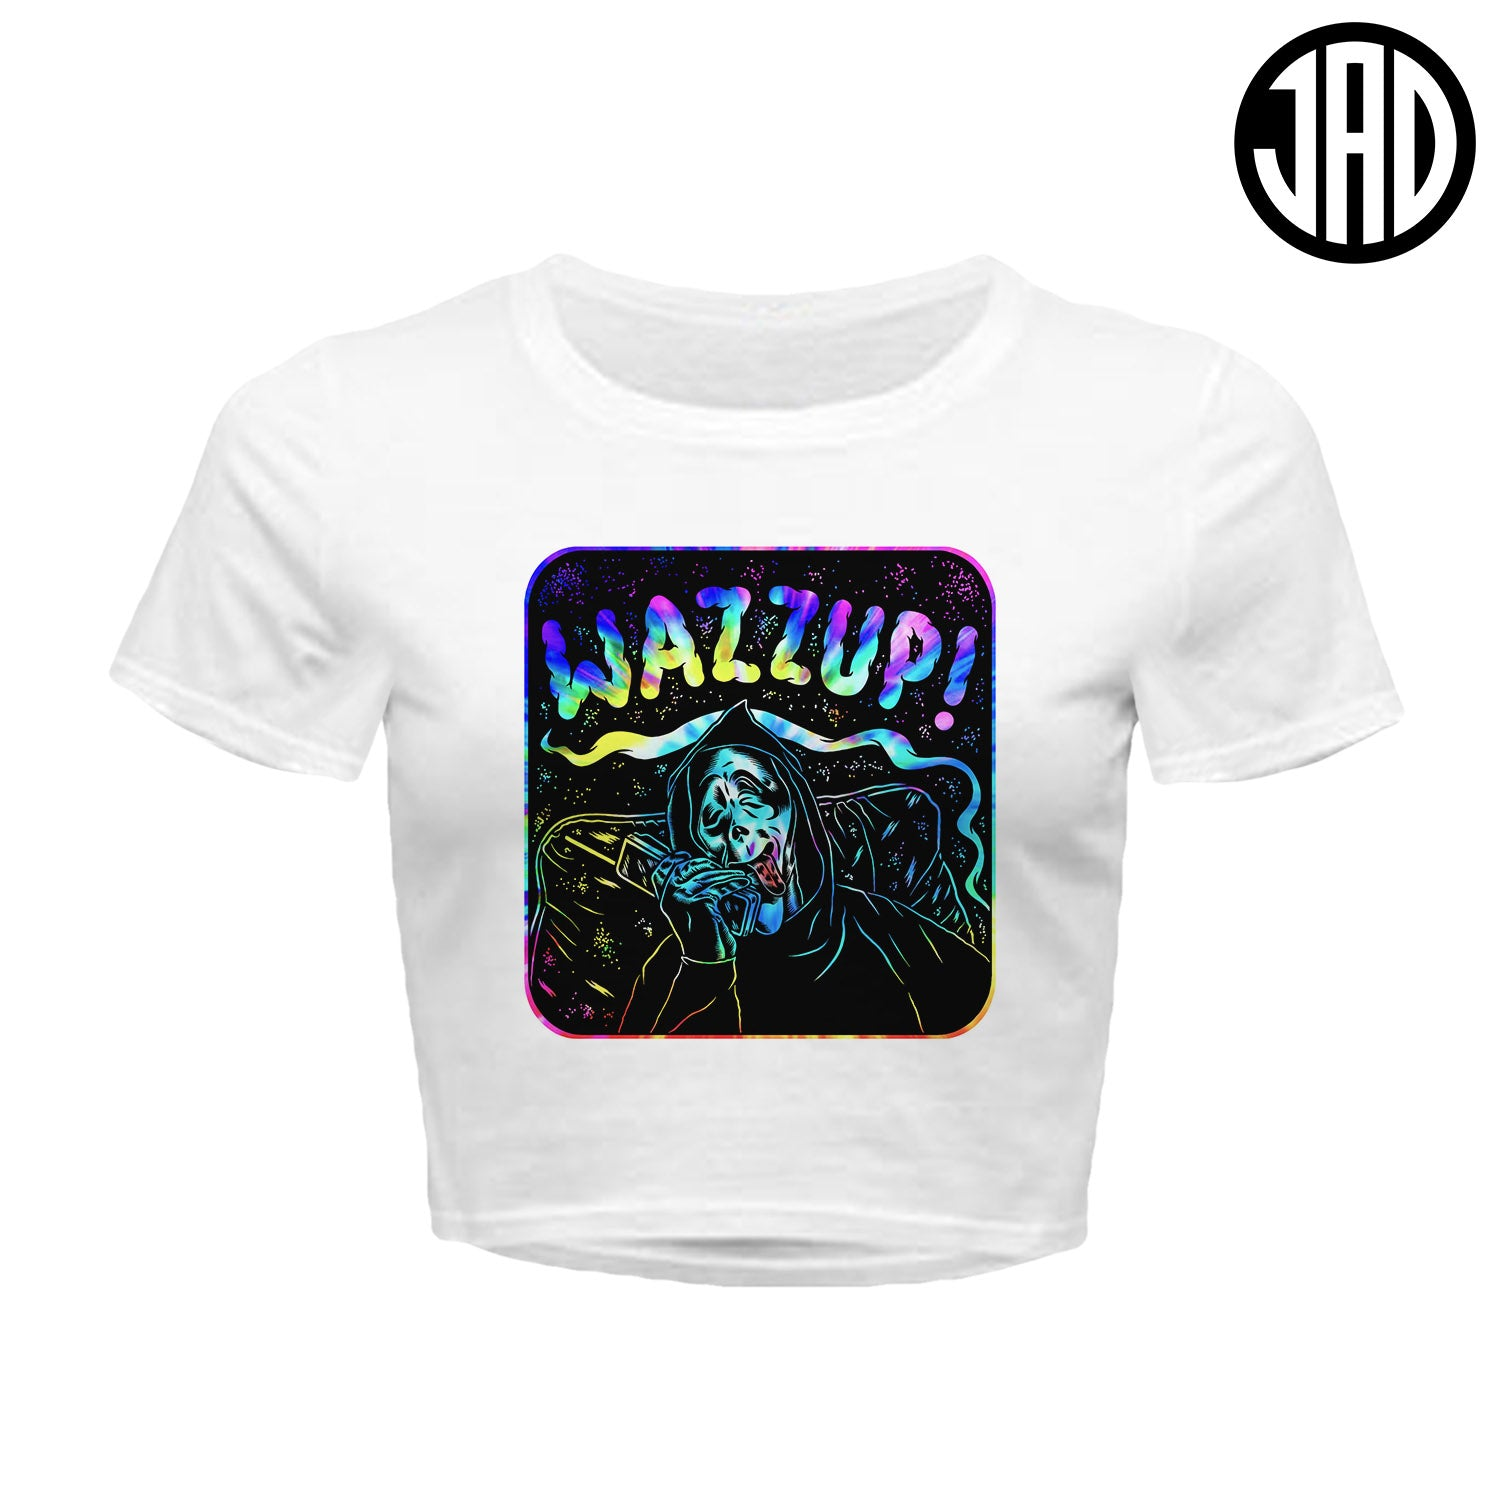 Wazzup Tie Dye - Women's Crop Top